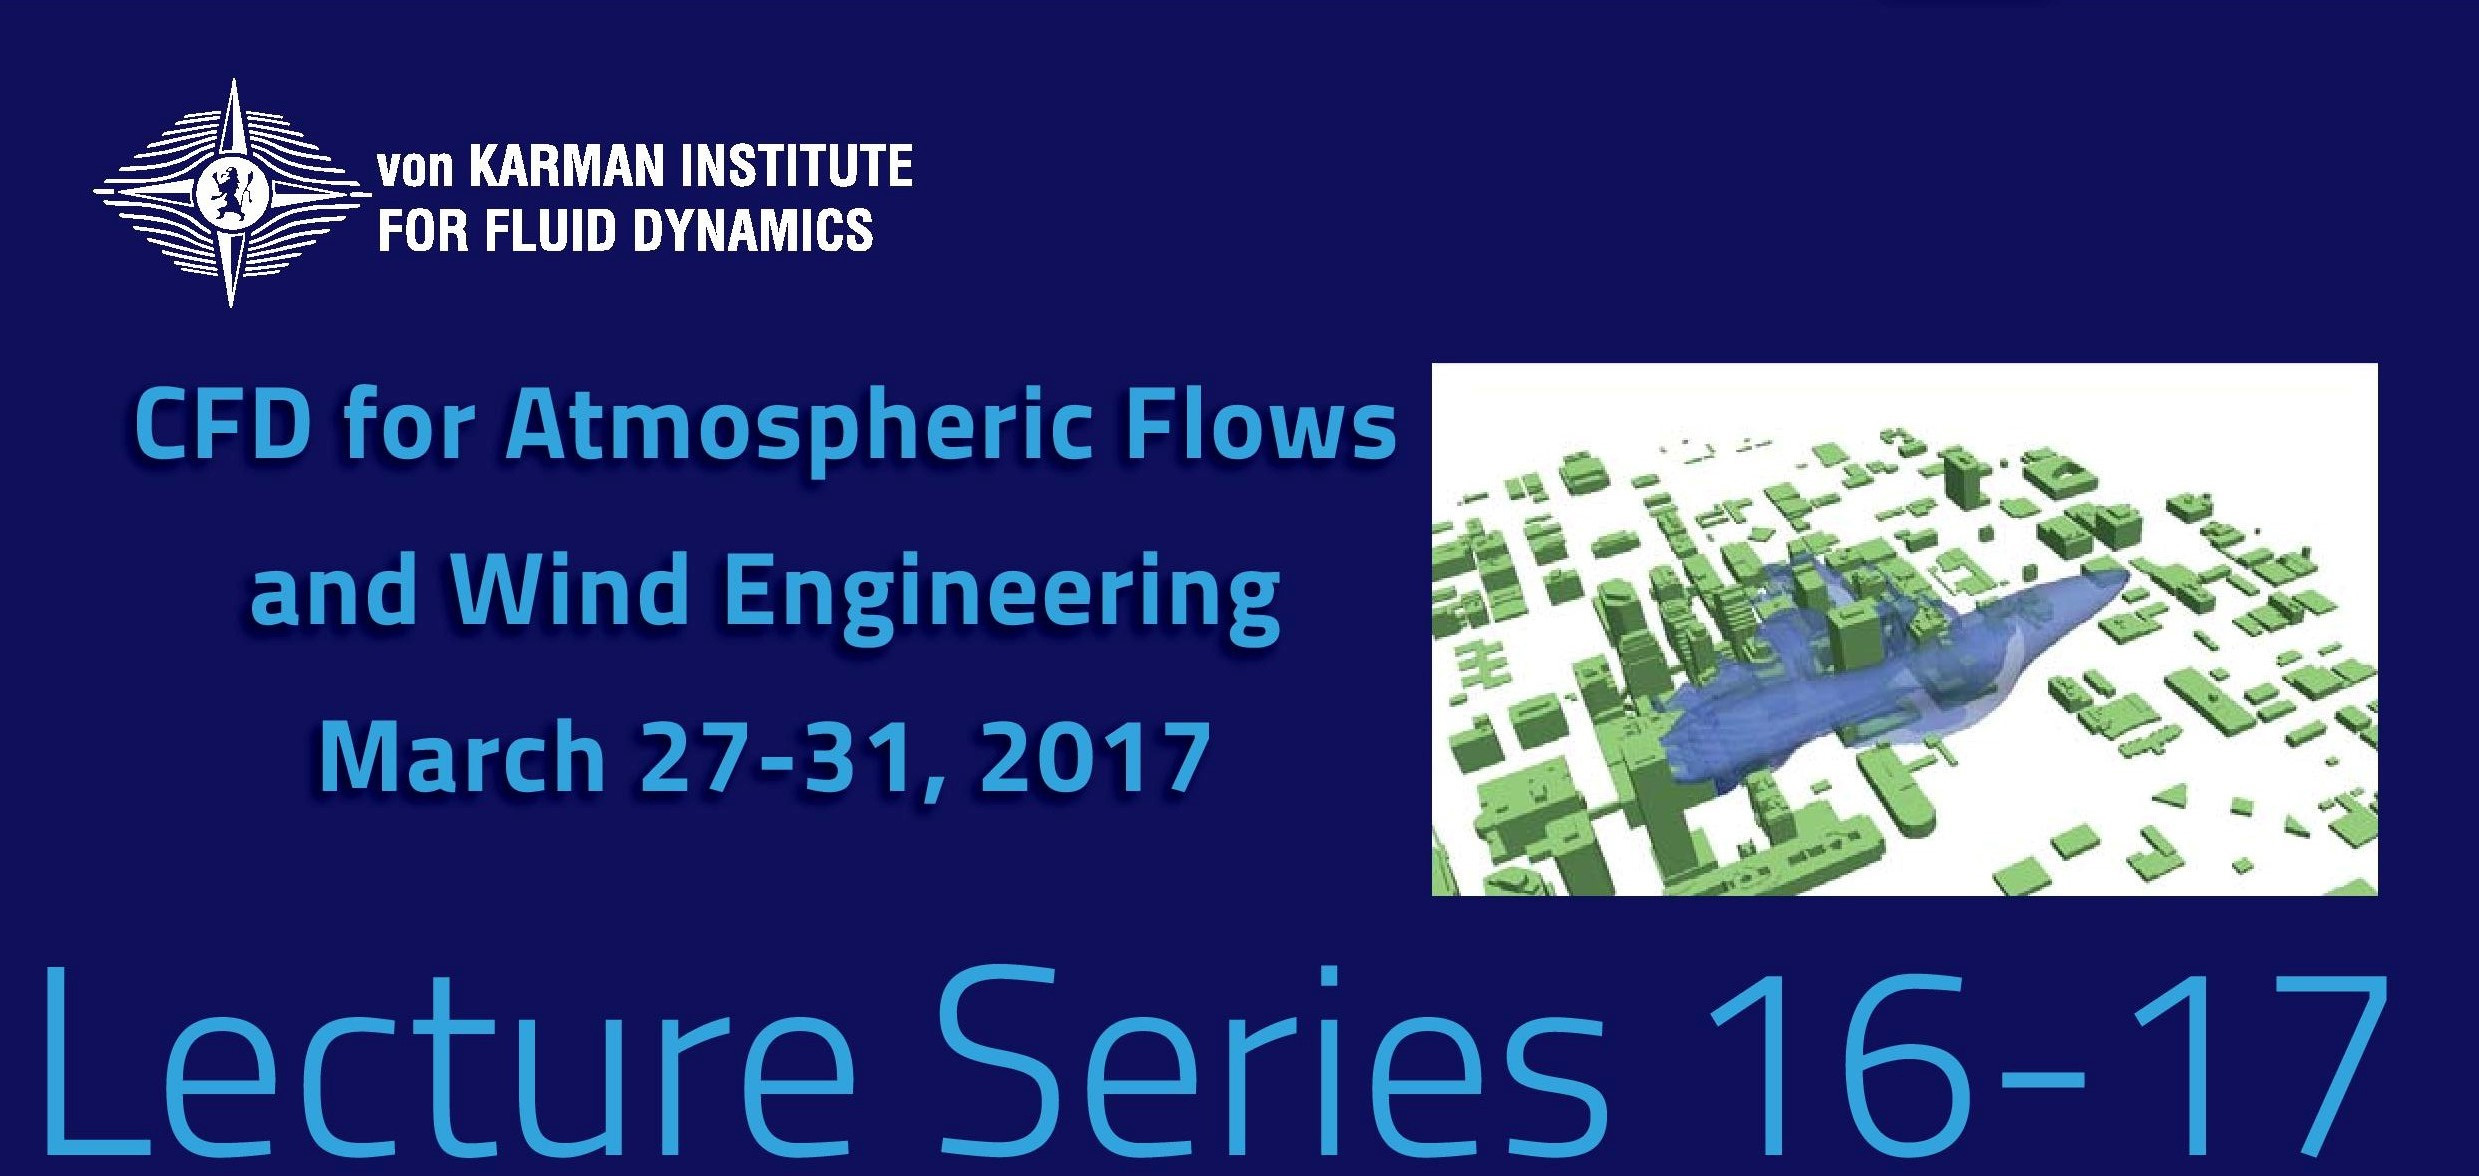 Mesoscale modeling of atmospheric flows for wind energy applications - BASU, S.